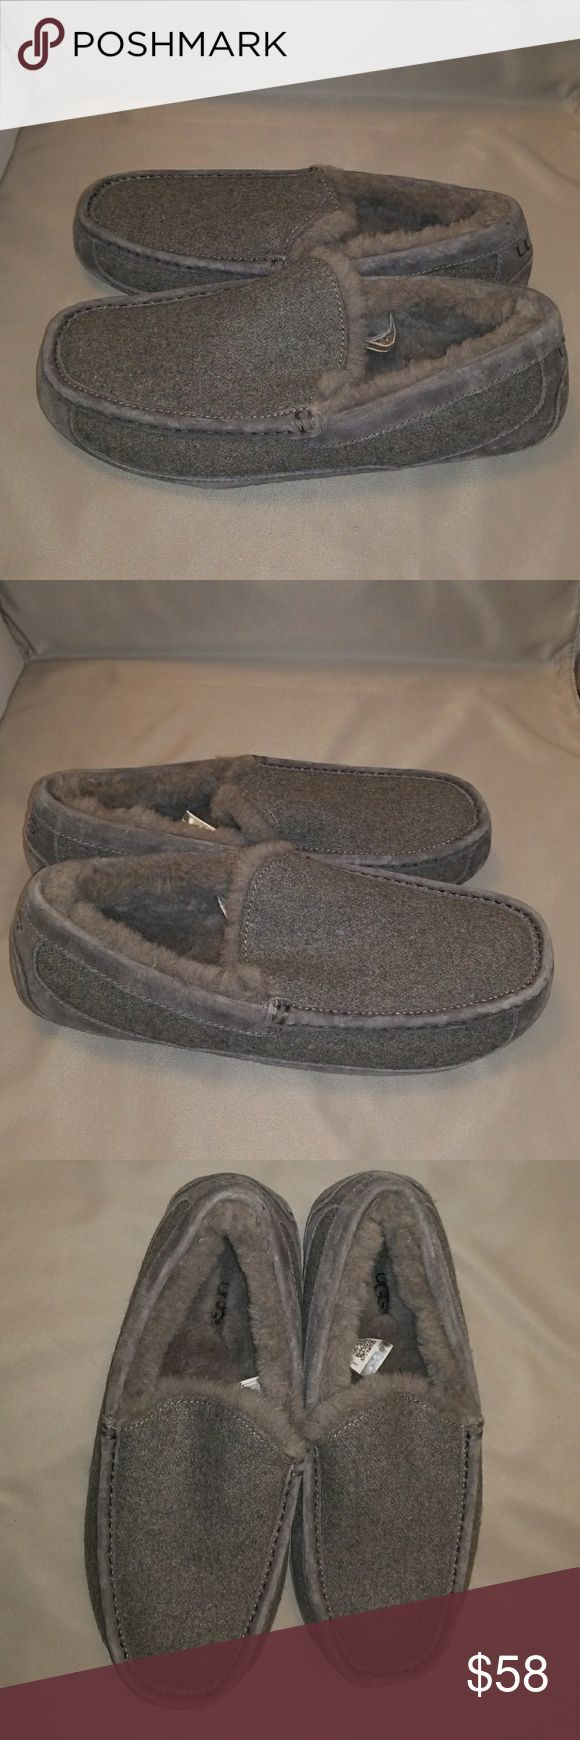 Men's UGG Ascot Wool/Sheepskin Slippers 10 Gray Excellent pre-owned condition UGG Shoes Loafers & Slip-Ons